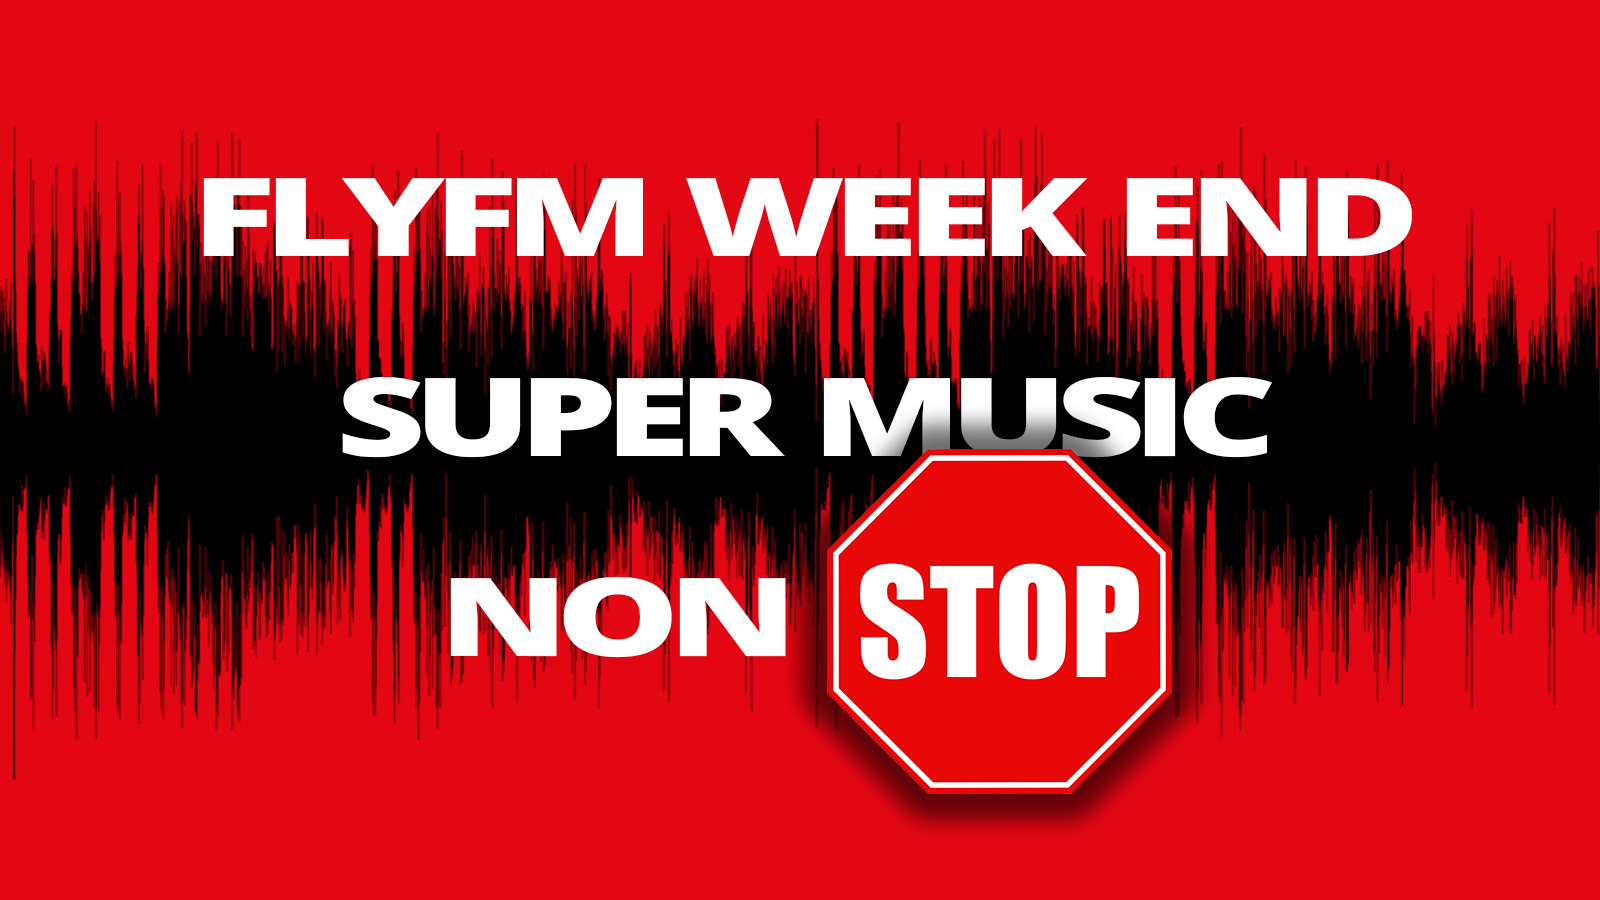 FlyFM Weekend Music Non Stop